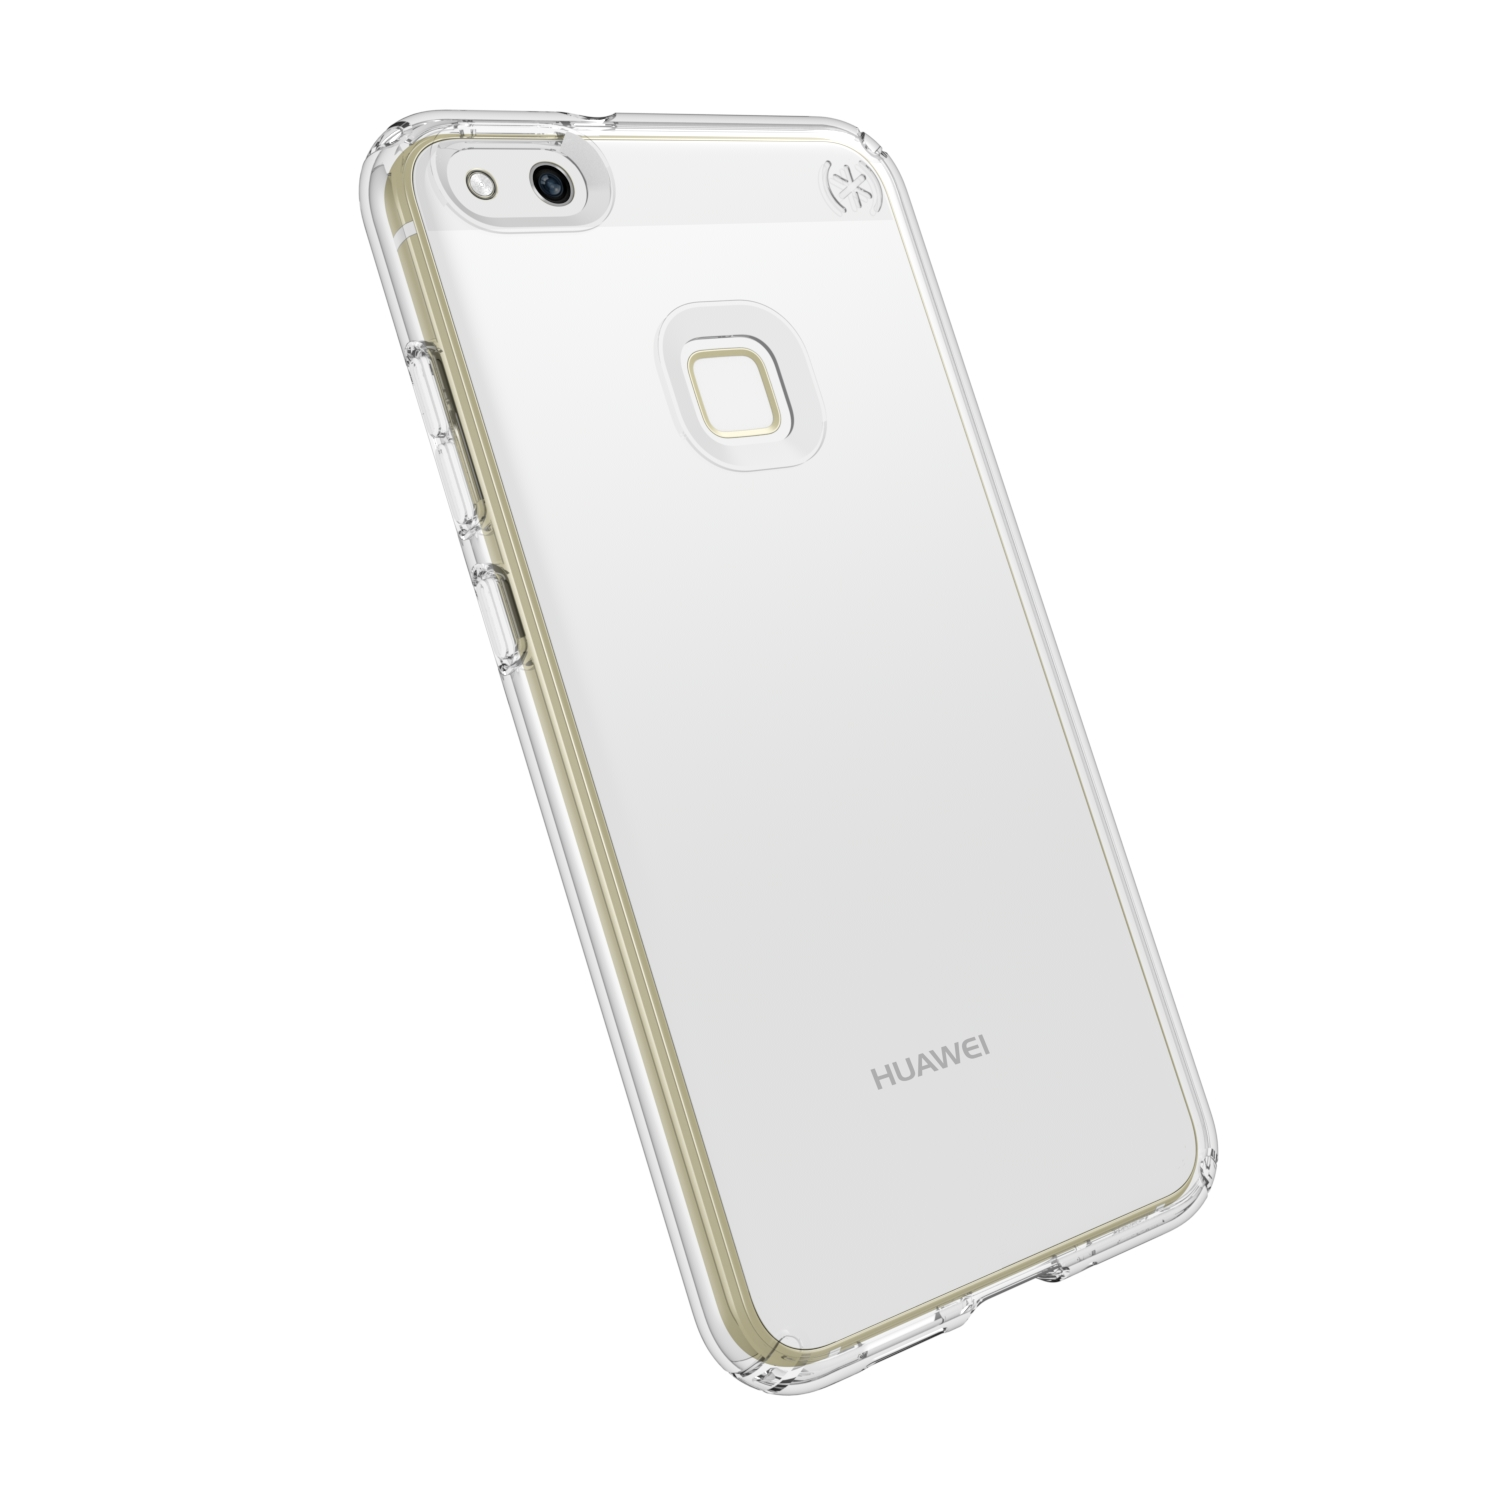 Search and compare best prices of Speck Presidio Clear Huawei P10 Lite Cases Clear in UK